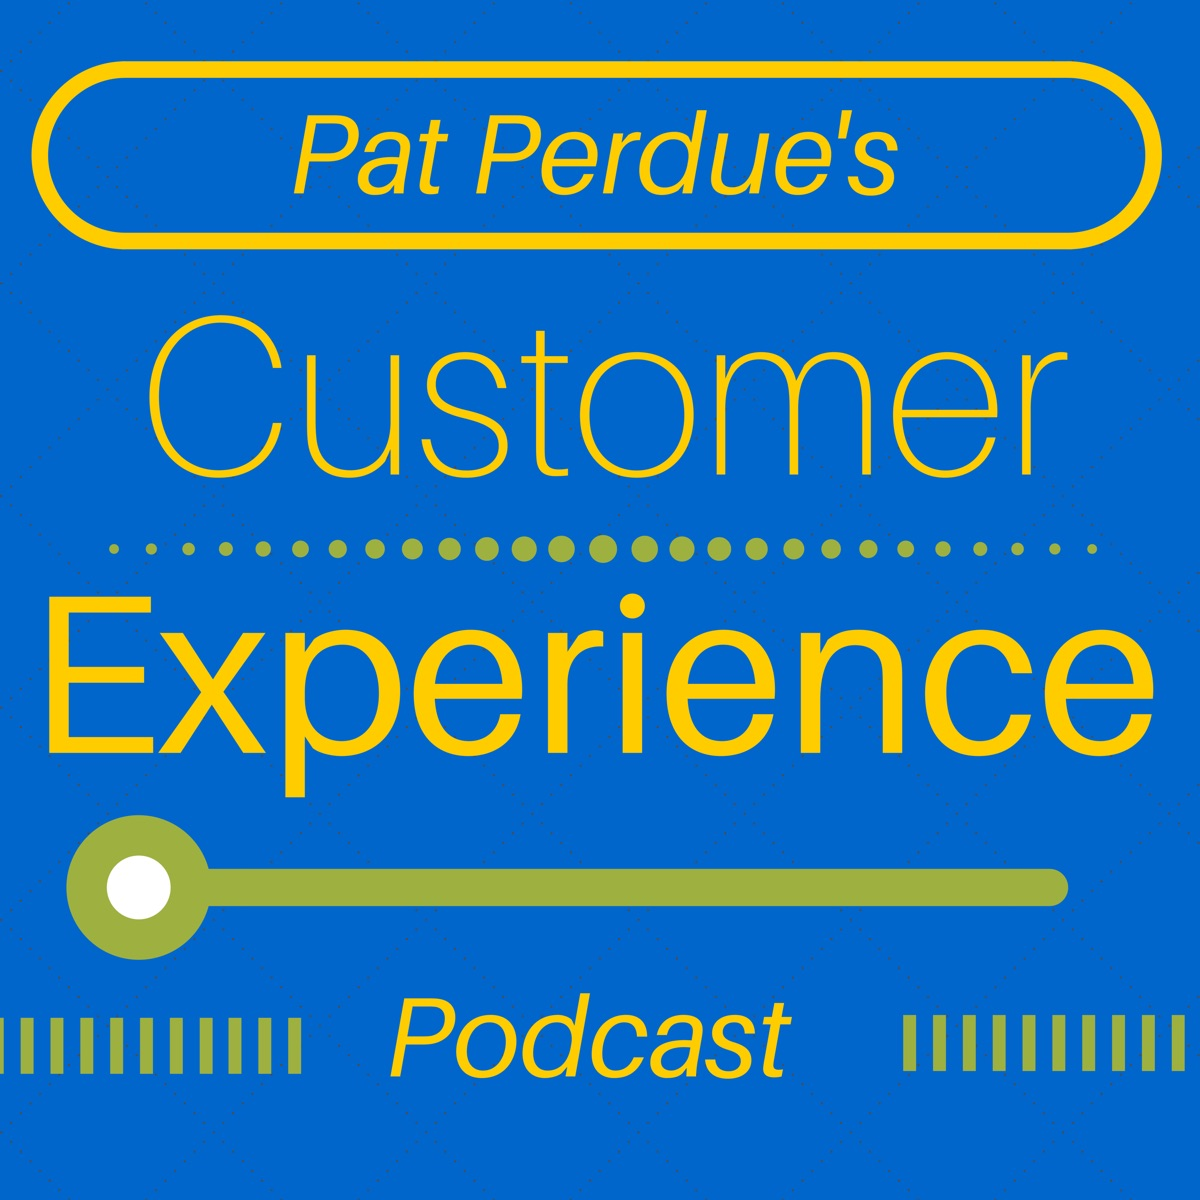 Episode 5 Arleen King Svp Customer Experience At Telus Shares How Truly Putting Customers First Is The Secret Ingredient In Providing Great Customer Experience Pat Perdue S Customer Experience Podcast Podcast Podtail